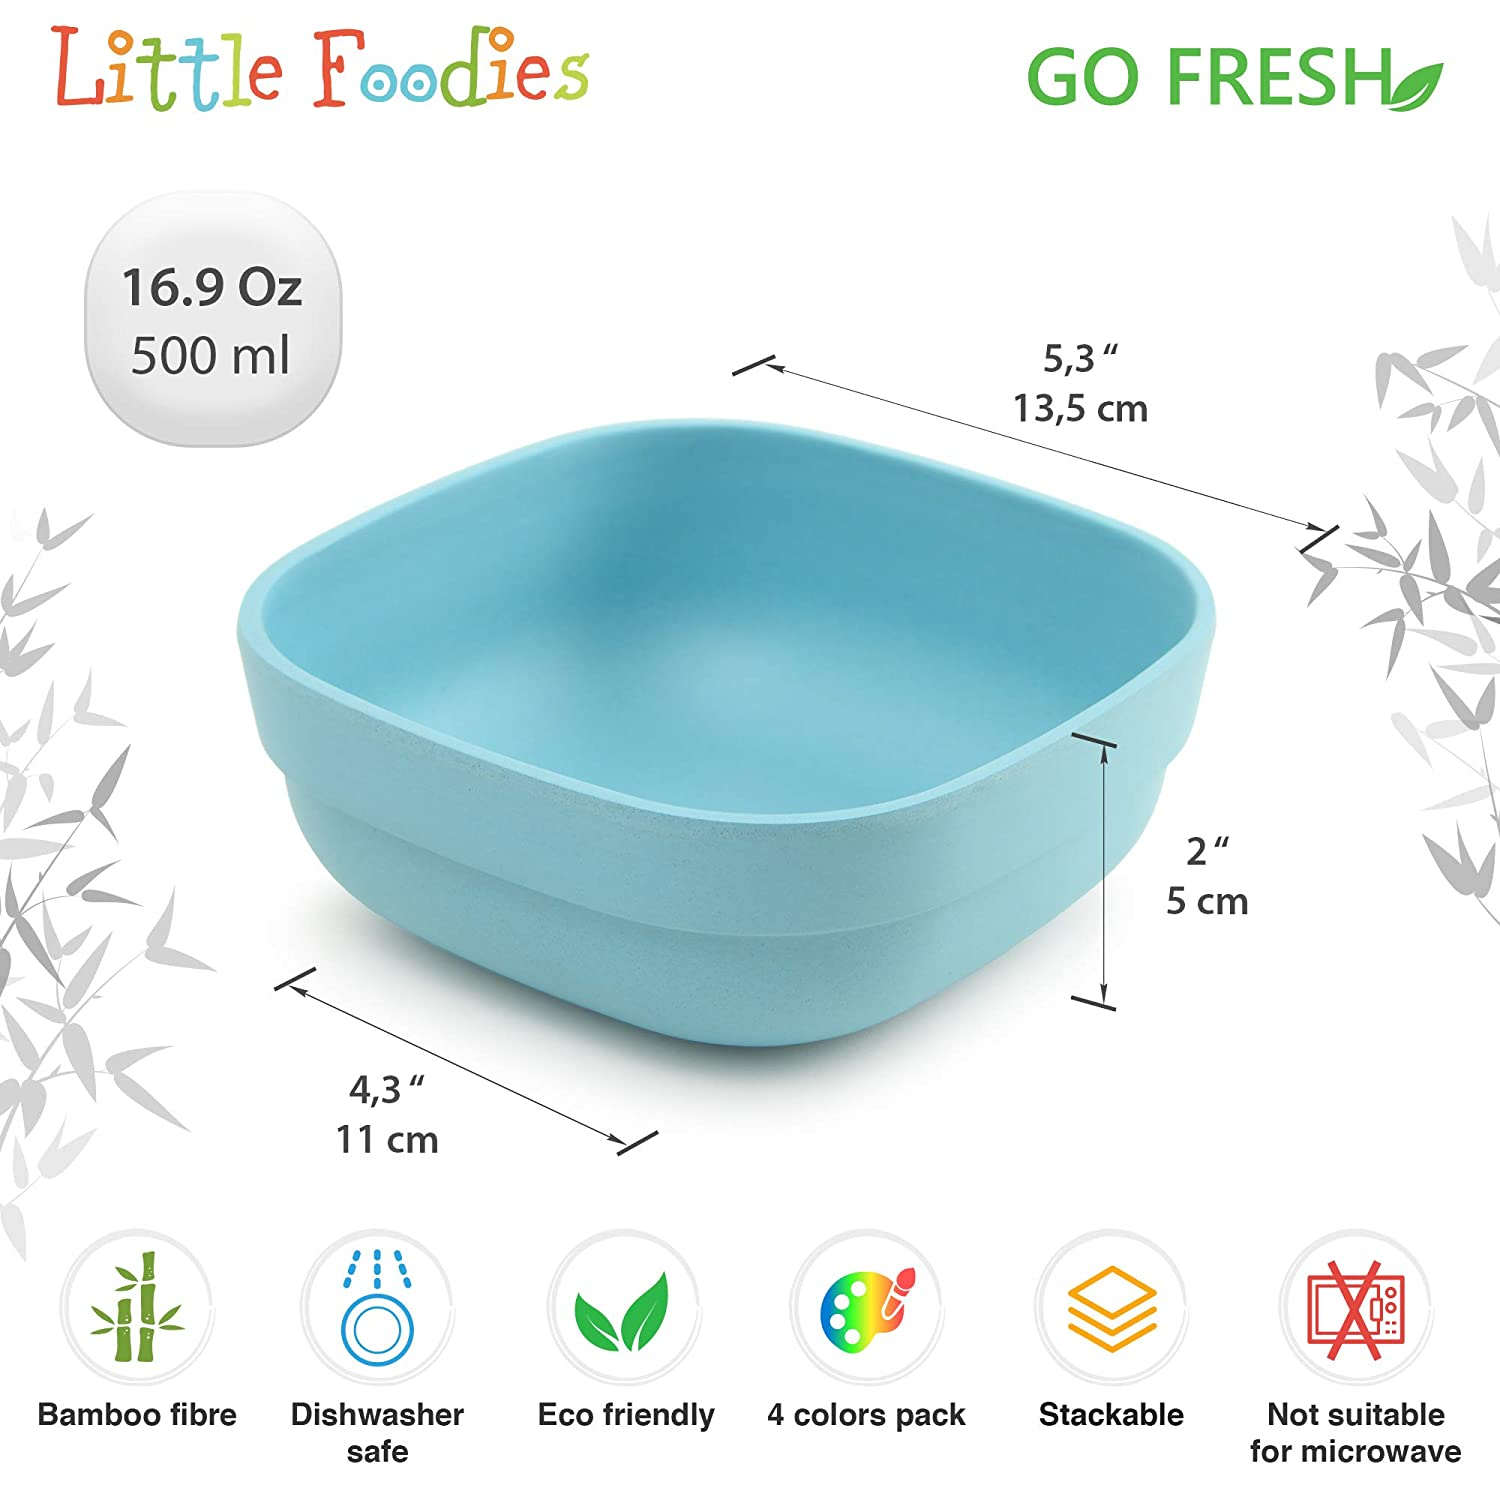 BPA Free Eco-friendly kids bamboo bowls Set of 4 kids bamboo dinnerware for everyday use GO FRESH Bamboo Kids Bowls Dishwasher safe and Stackable